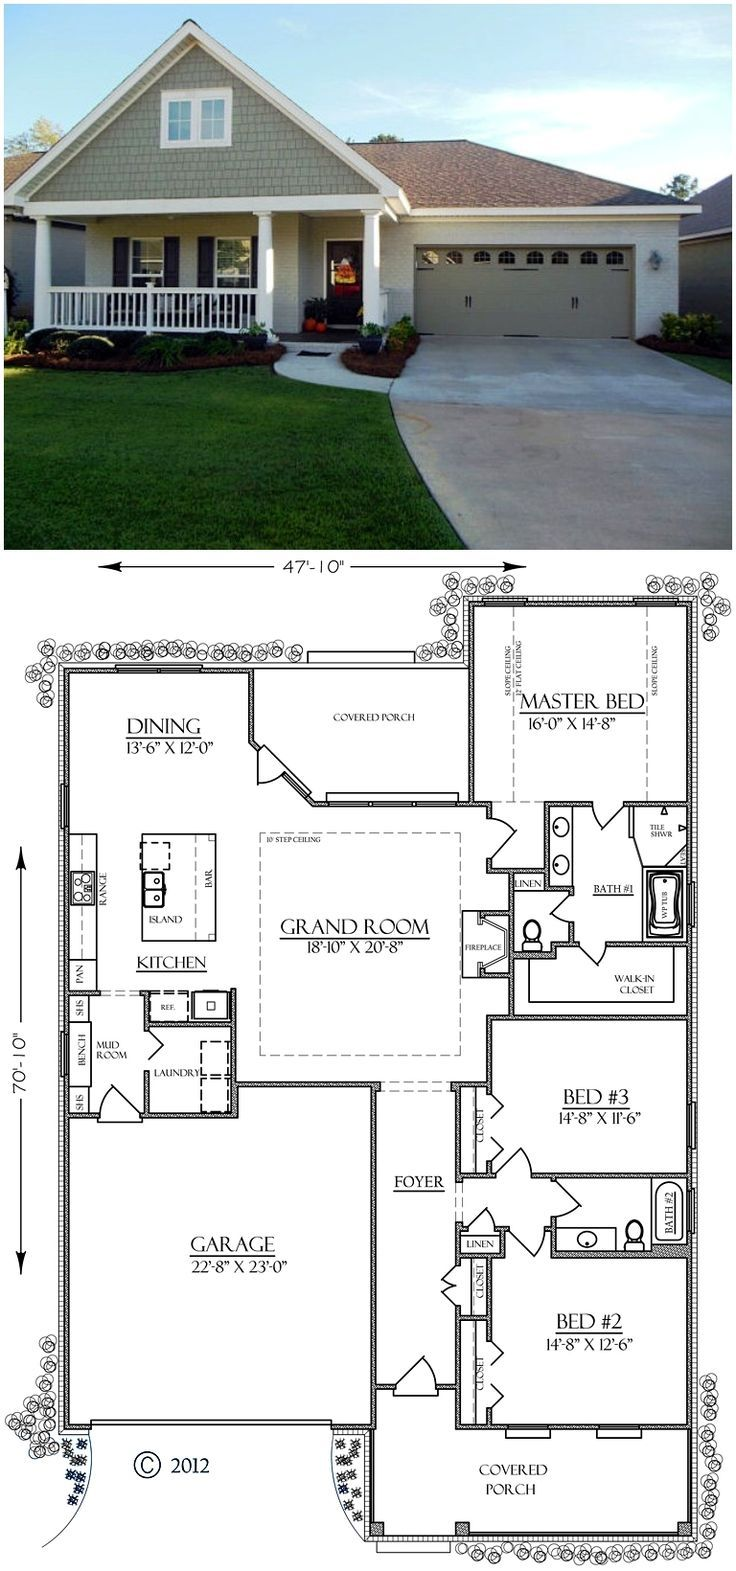 House plan 74755 finally one i wouldnt change structurally just screen in